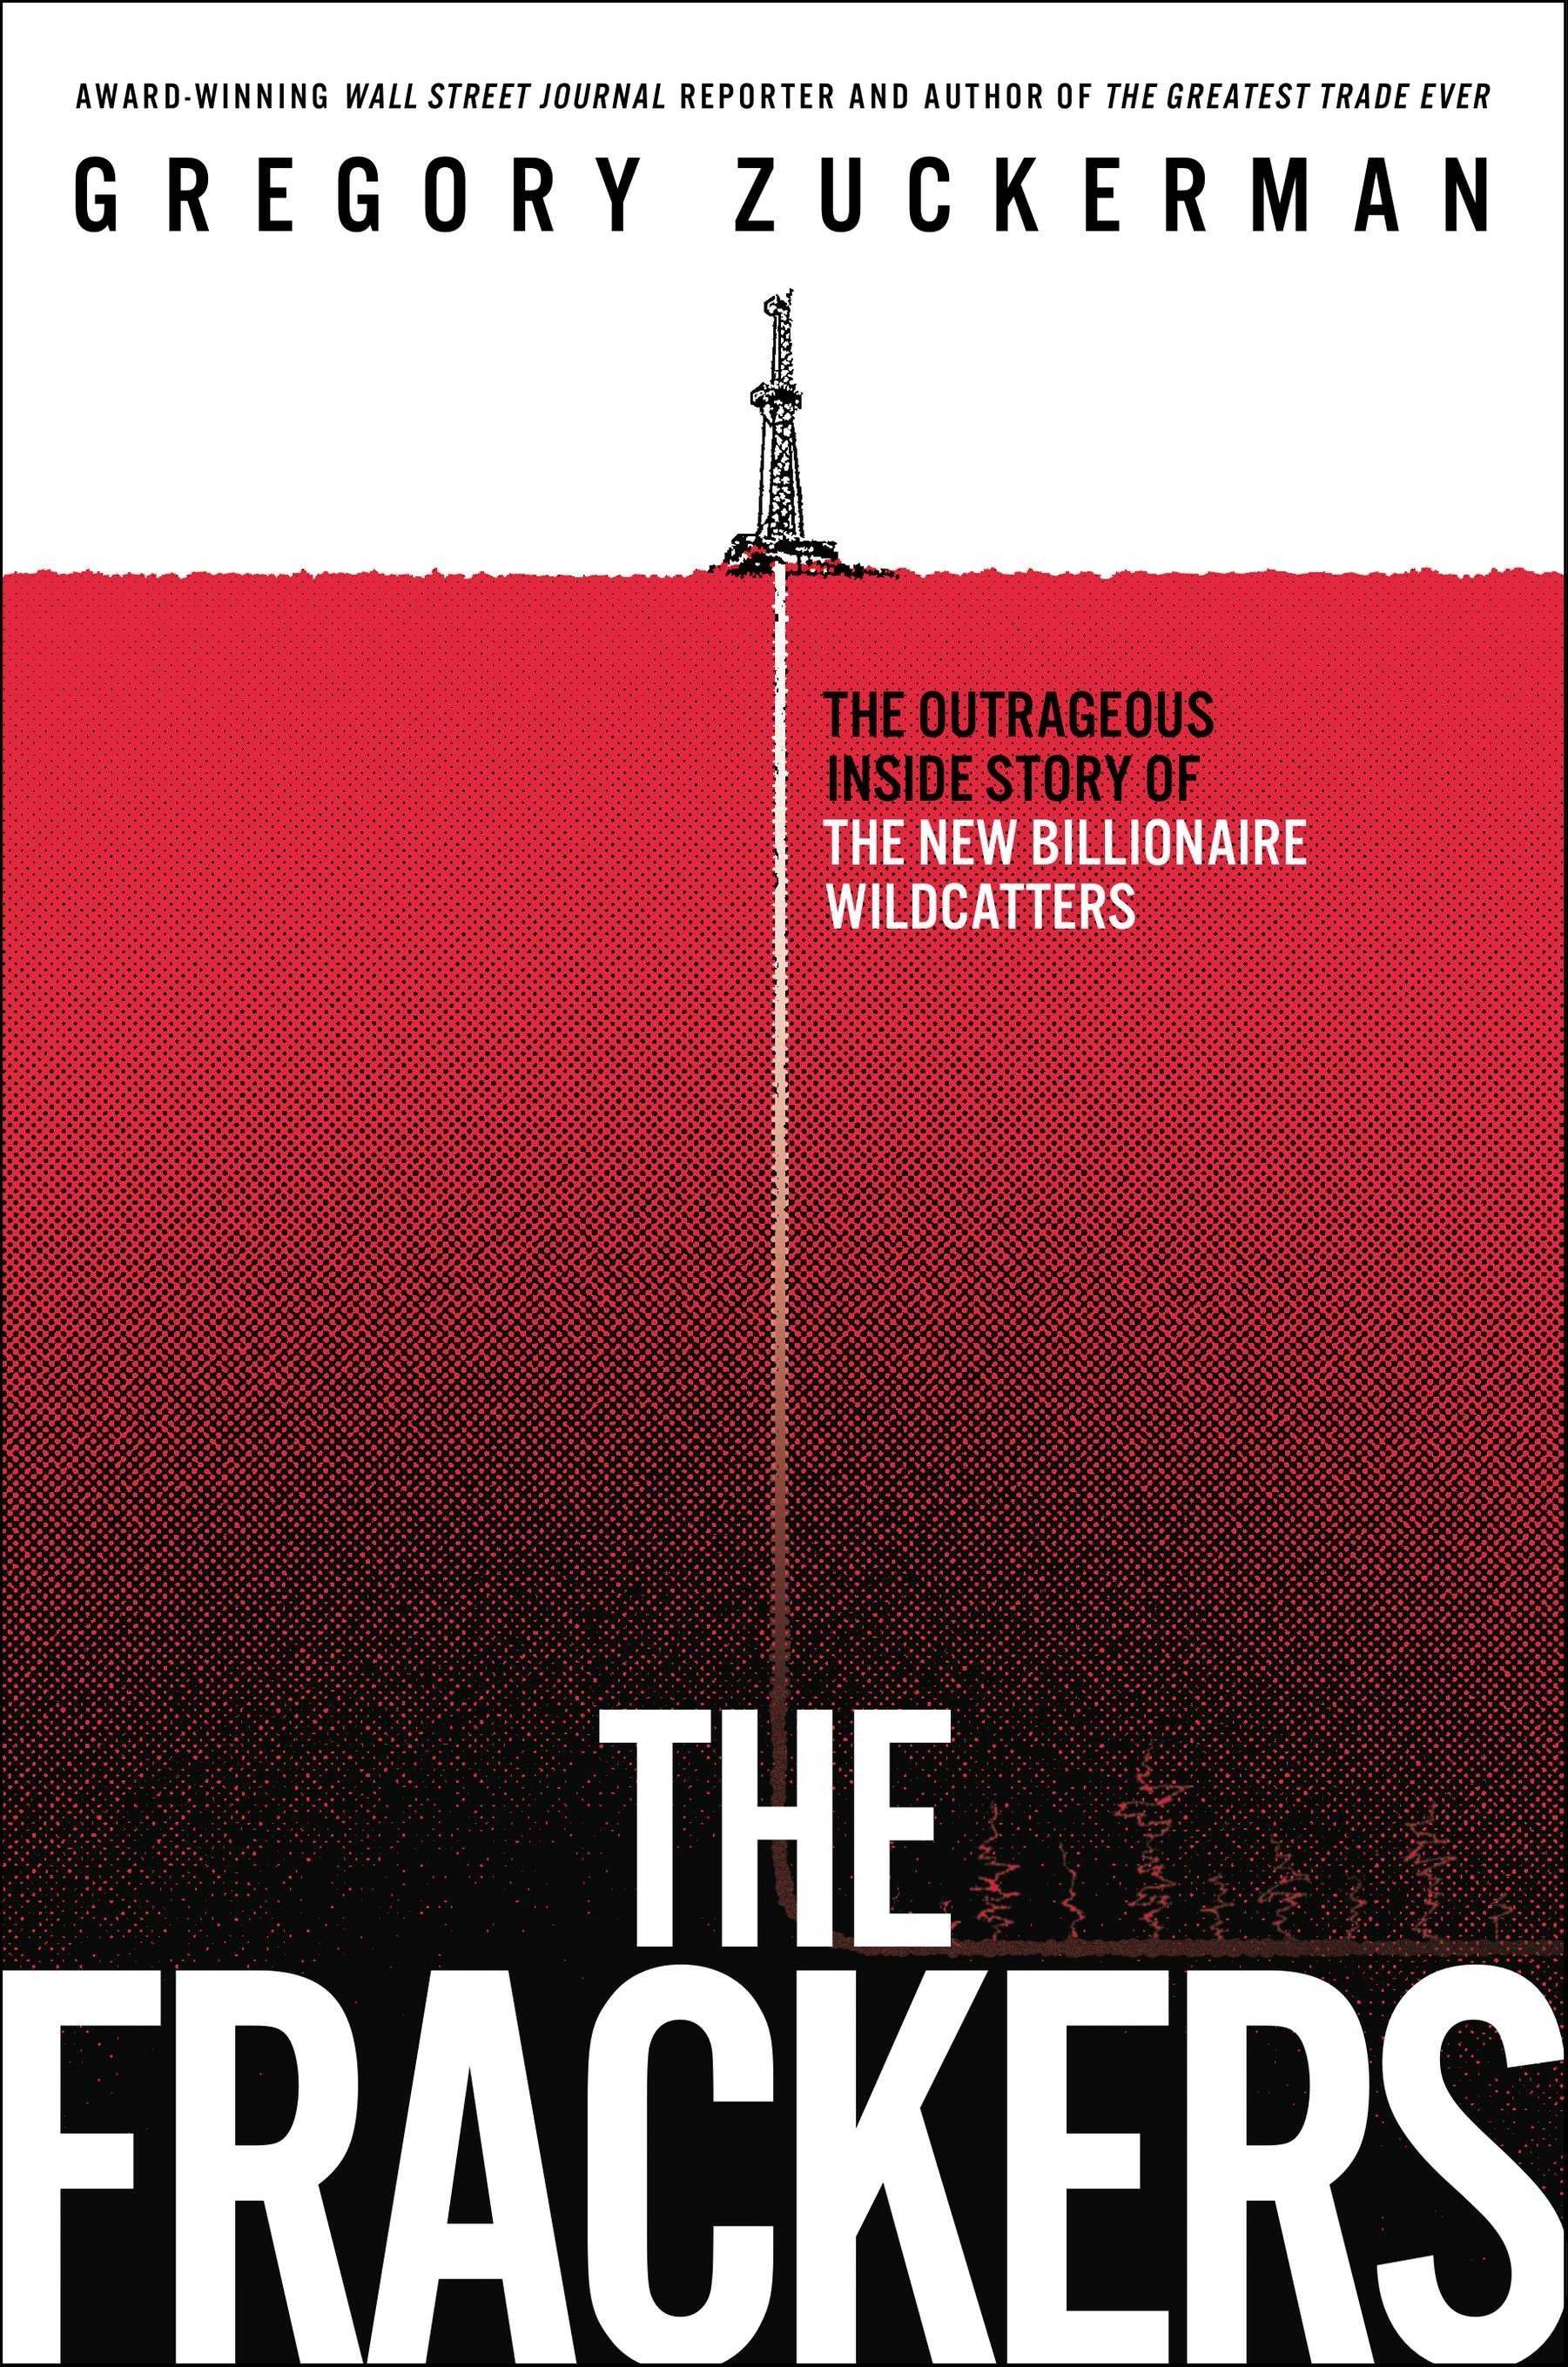 """The Frackers: The Outrageous Inside Story of the New Billionaire Wildcatters"" was written by Gregory Zuckerman."